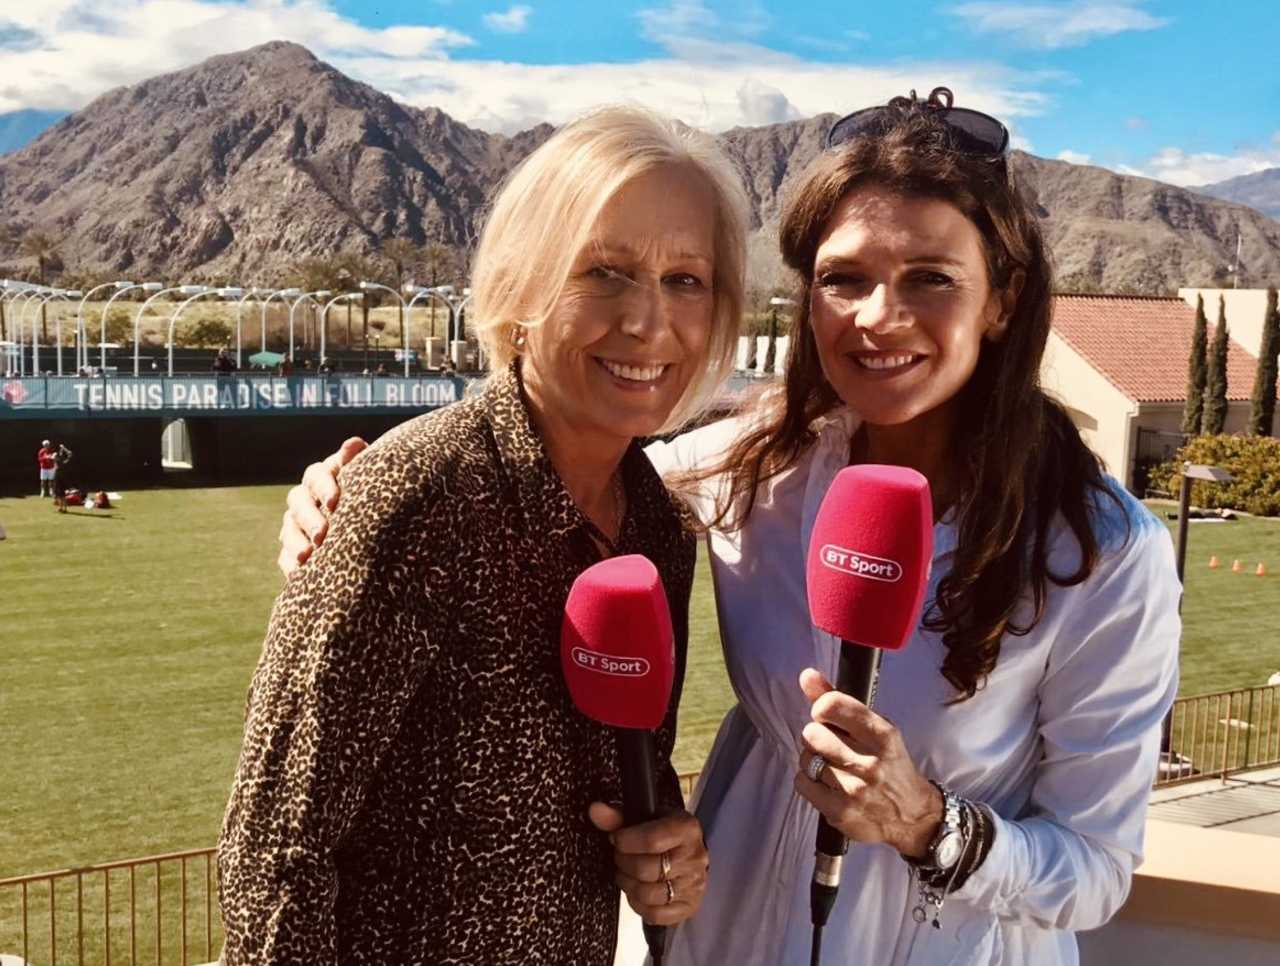 Annabel Croft and Martinal Navratilova